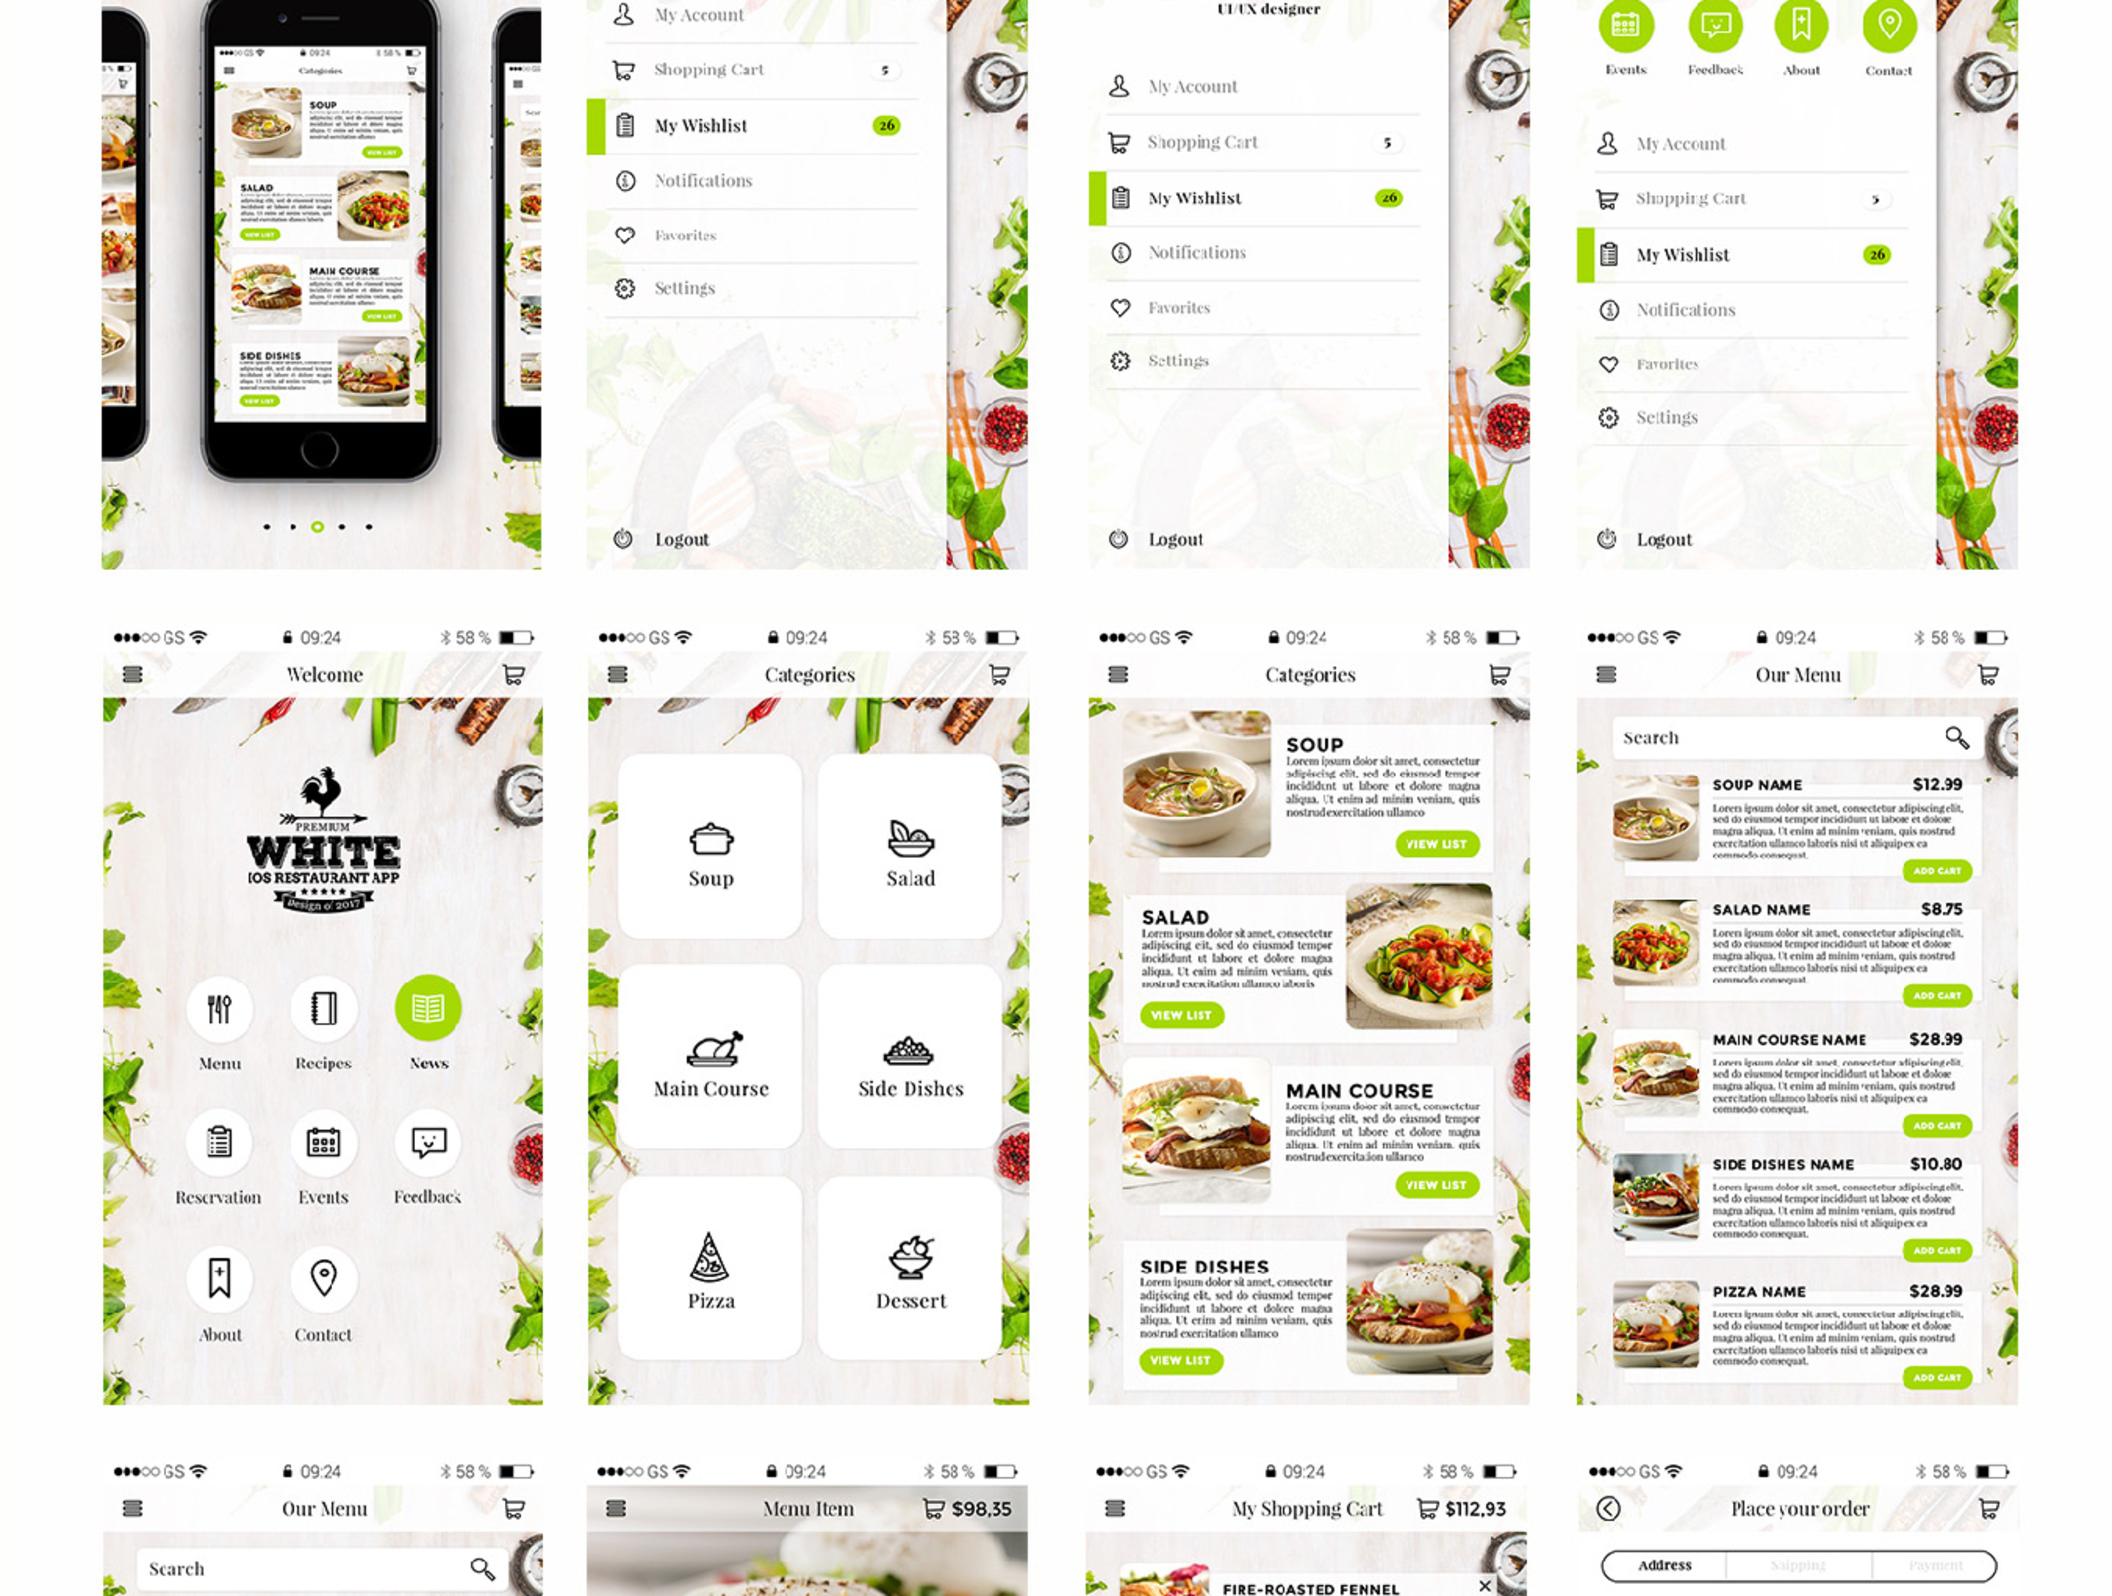 Premium White IOS Restaurant App ui kit